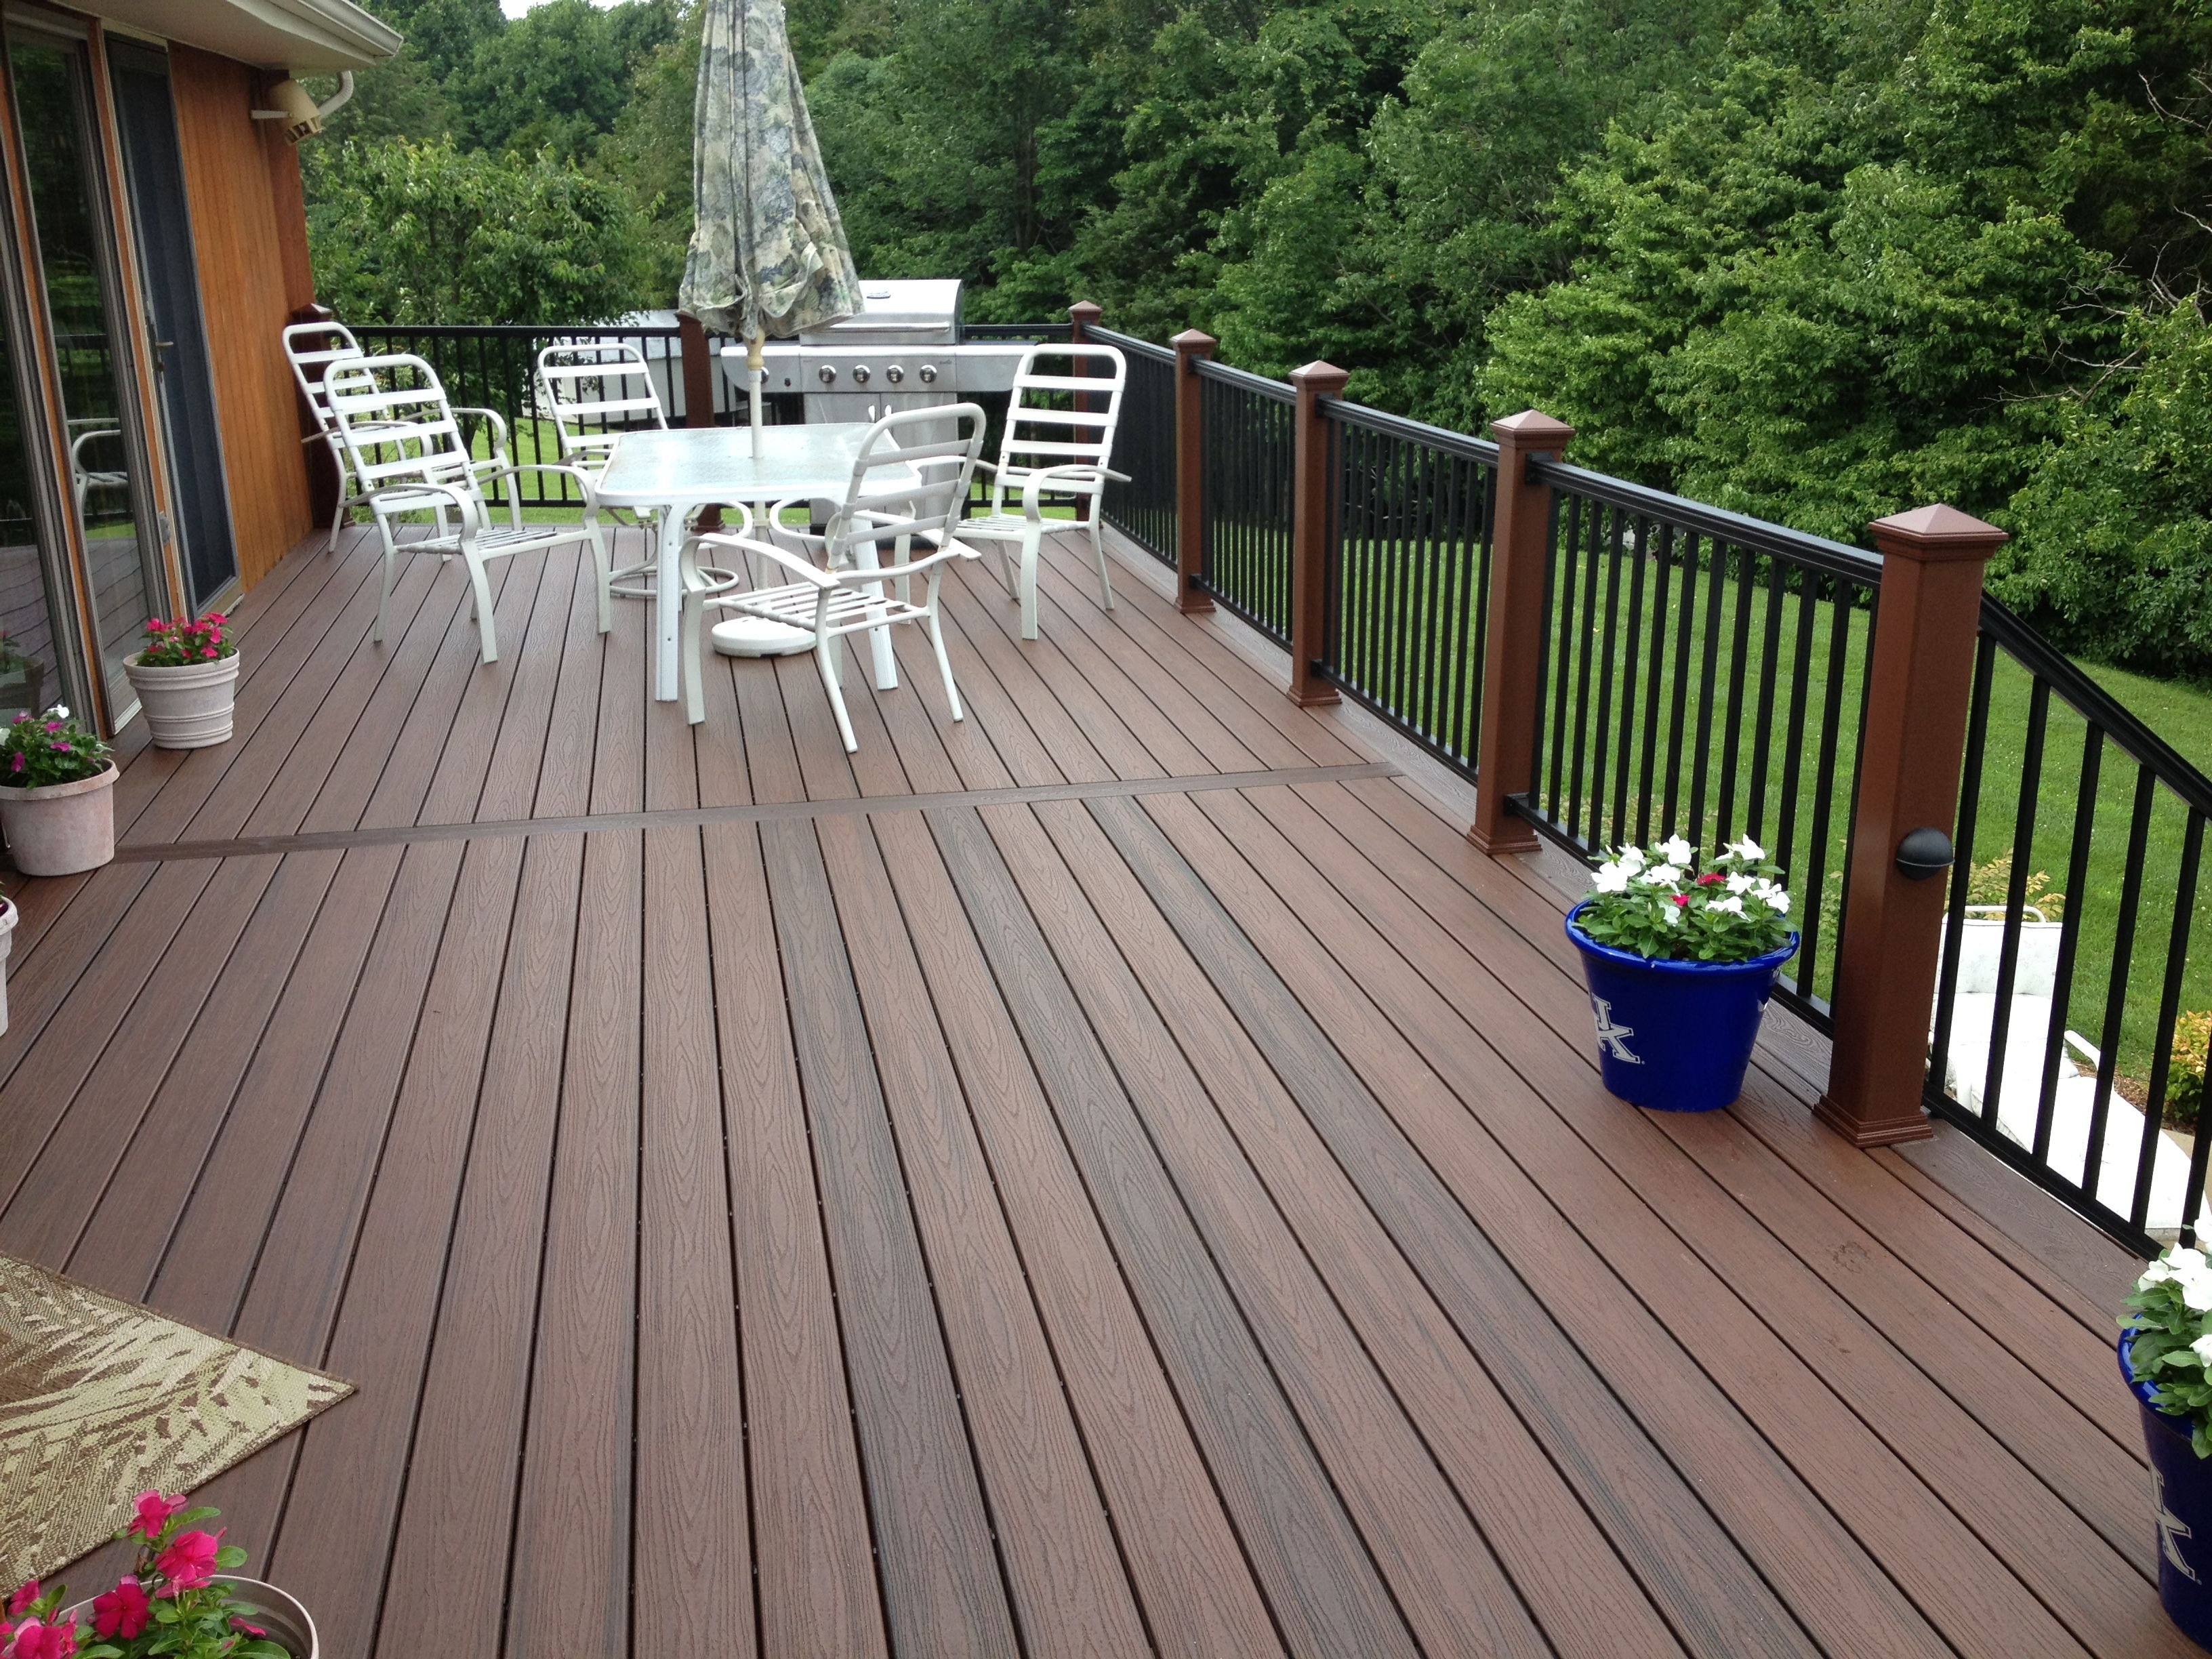 Look At The Great Variation Of Color To The Trex Transcends Spiced Rum Decking It Really Makes For A Much More Reali Decks Backyard Trex Deck Trex Deck Colors